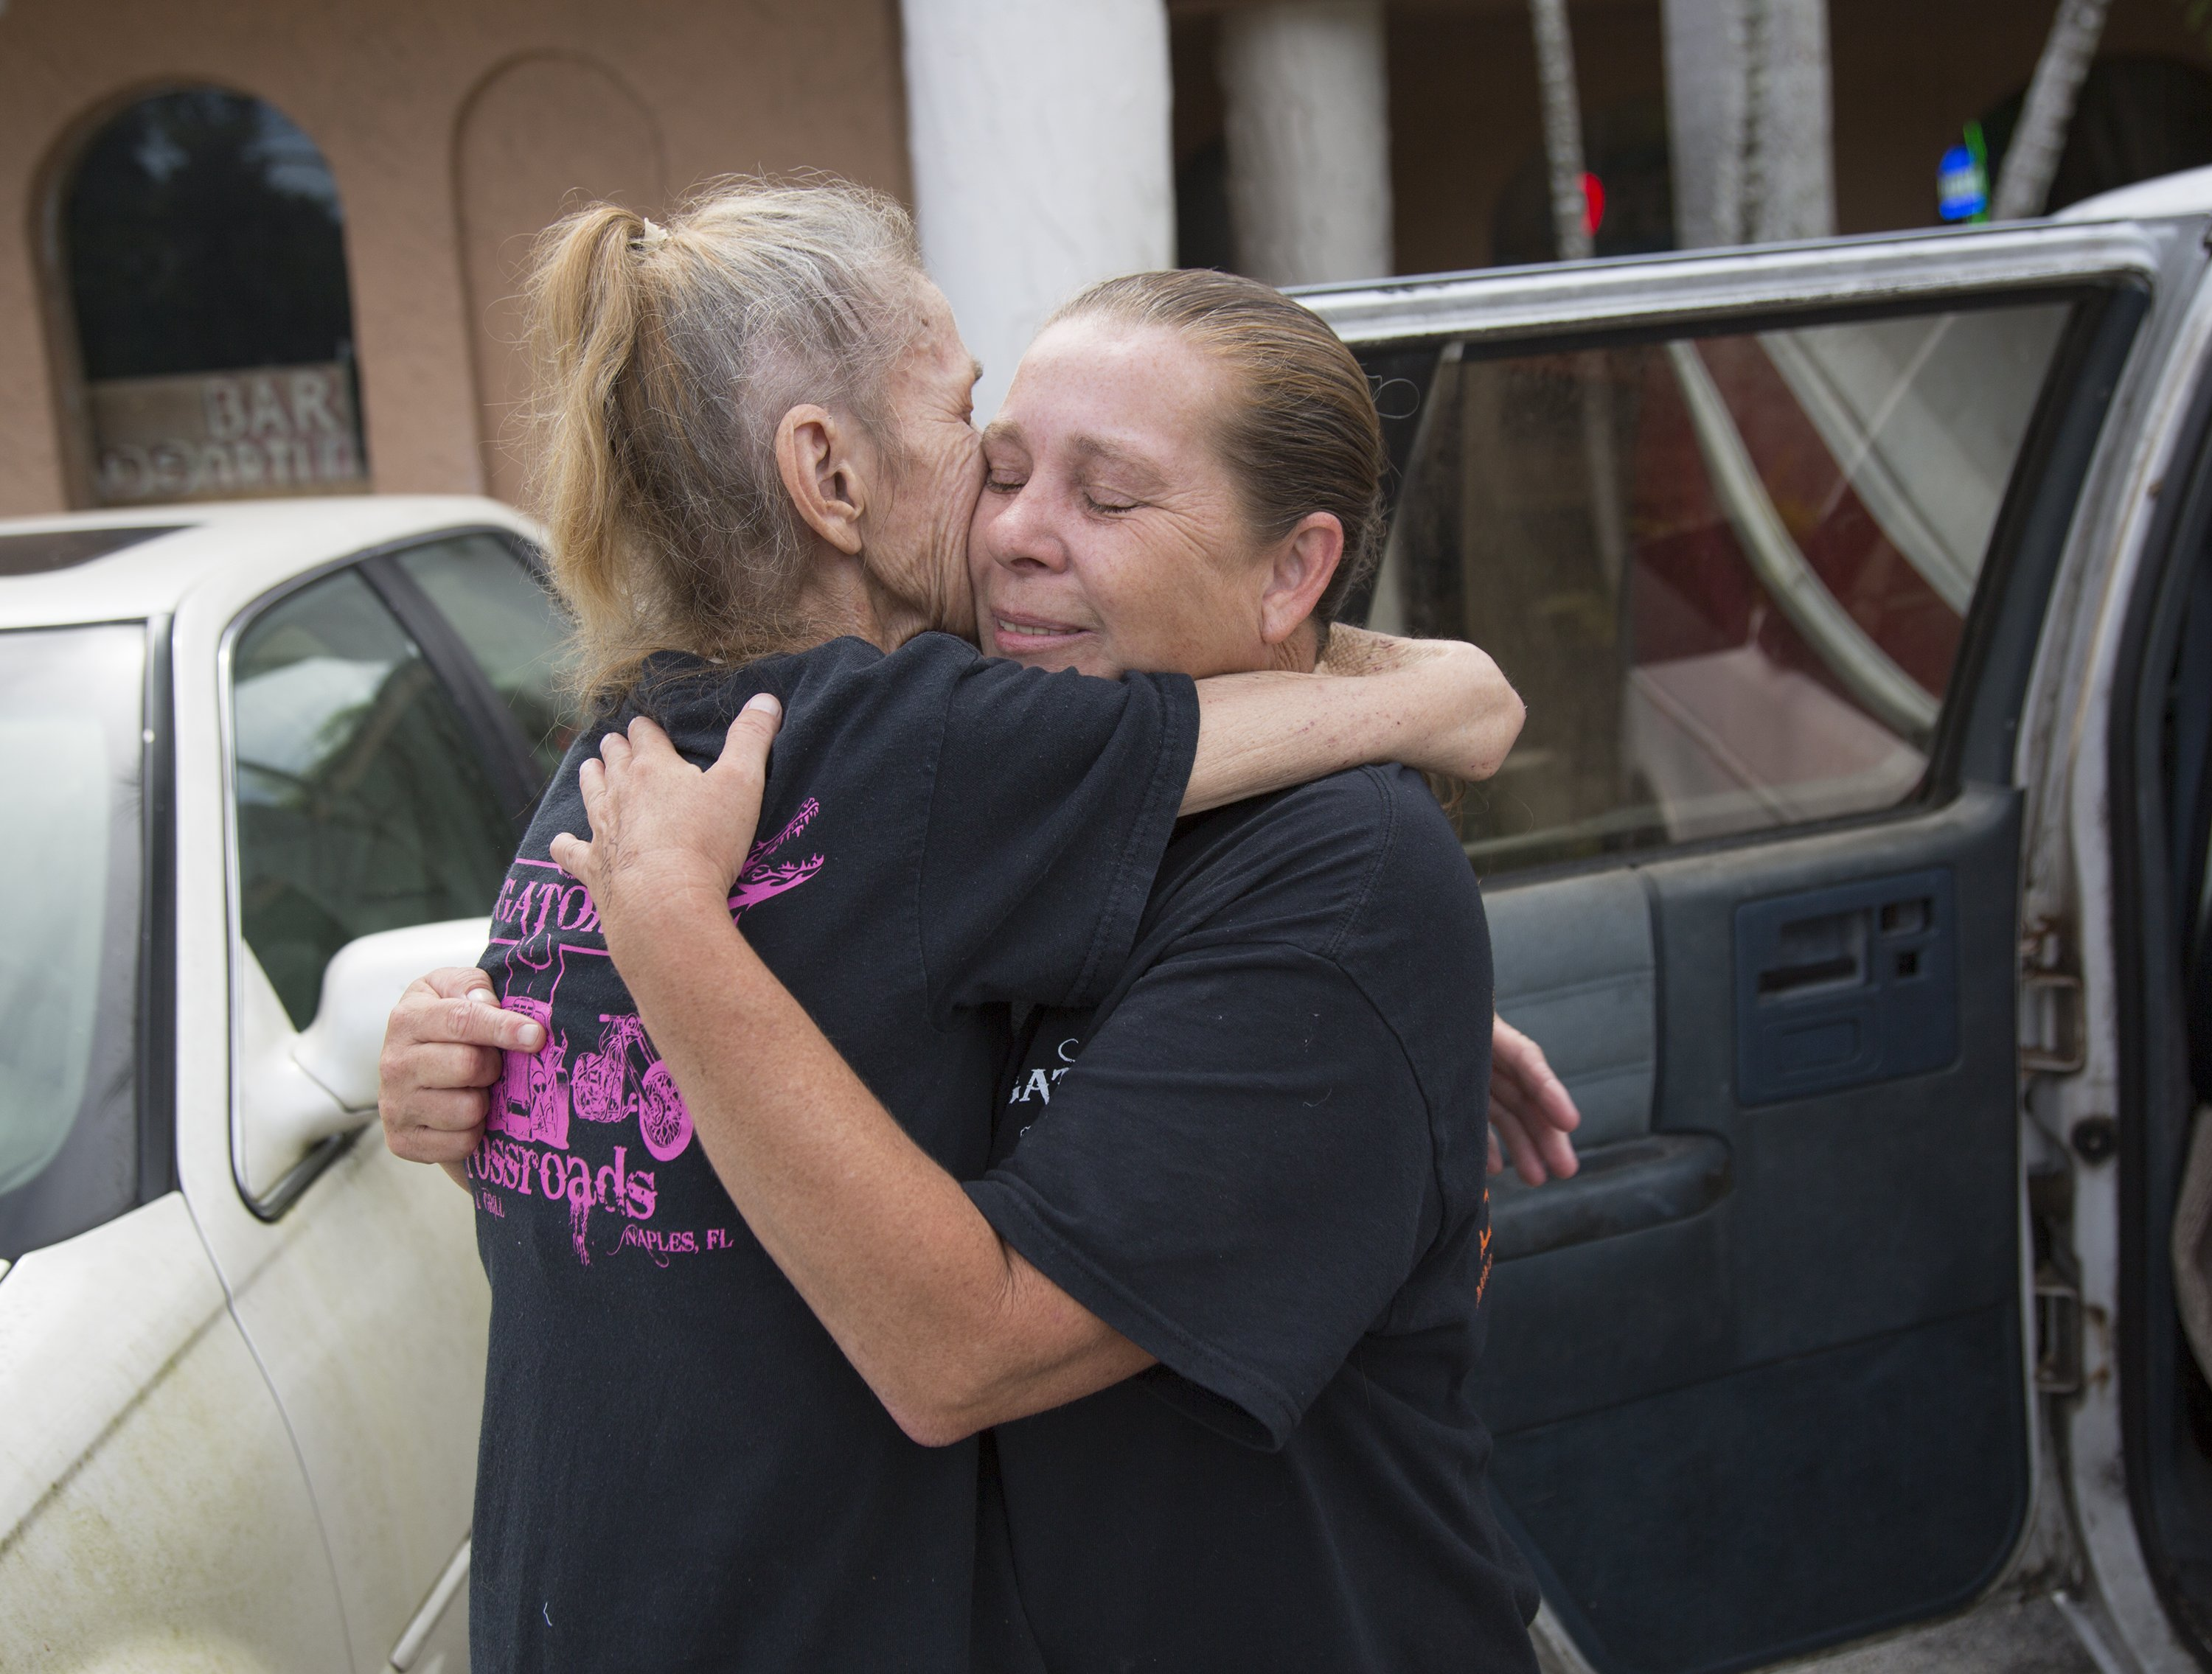 Image: Gator's Crossroads owner Linda Pauly, right, embraces cook Candy Canfield outside the bar before saying goodbye on Friday, Sept. 8, 2017 in Collier County, Florida.